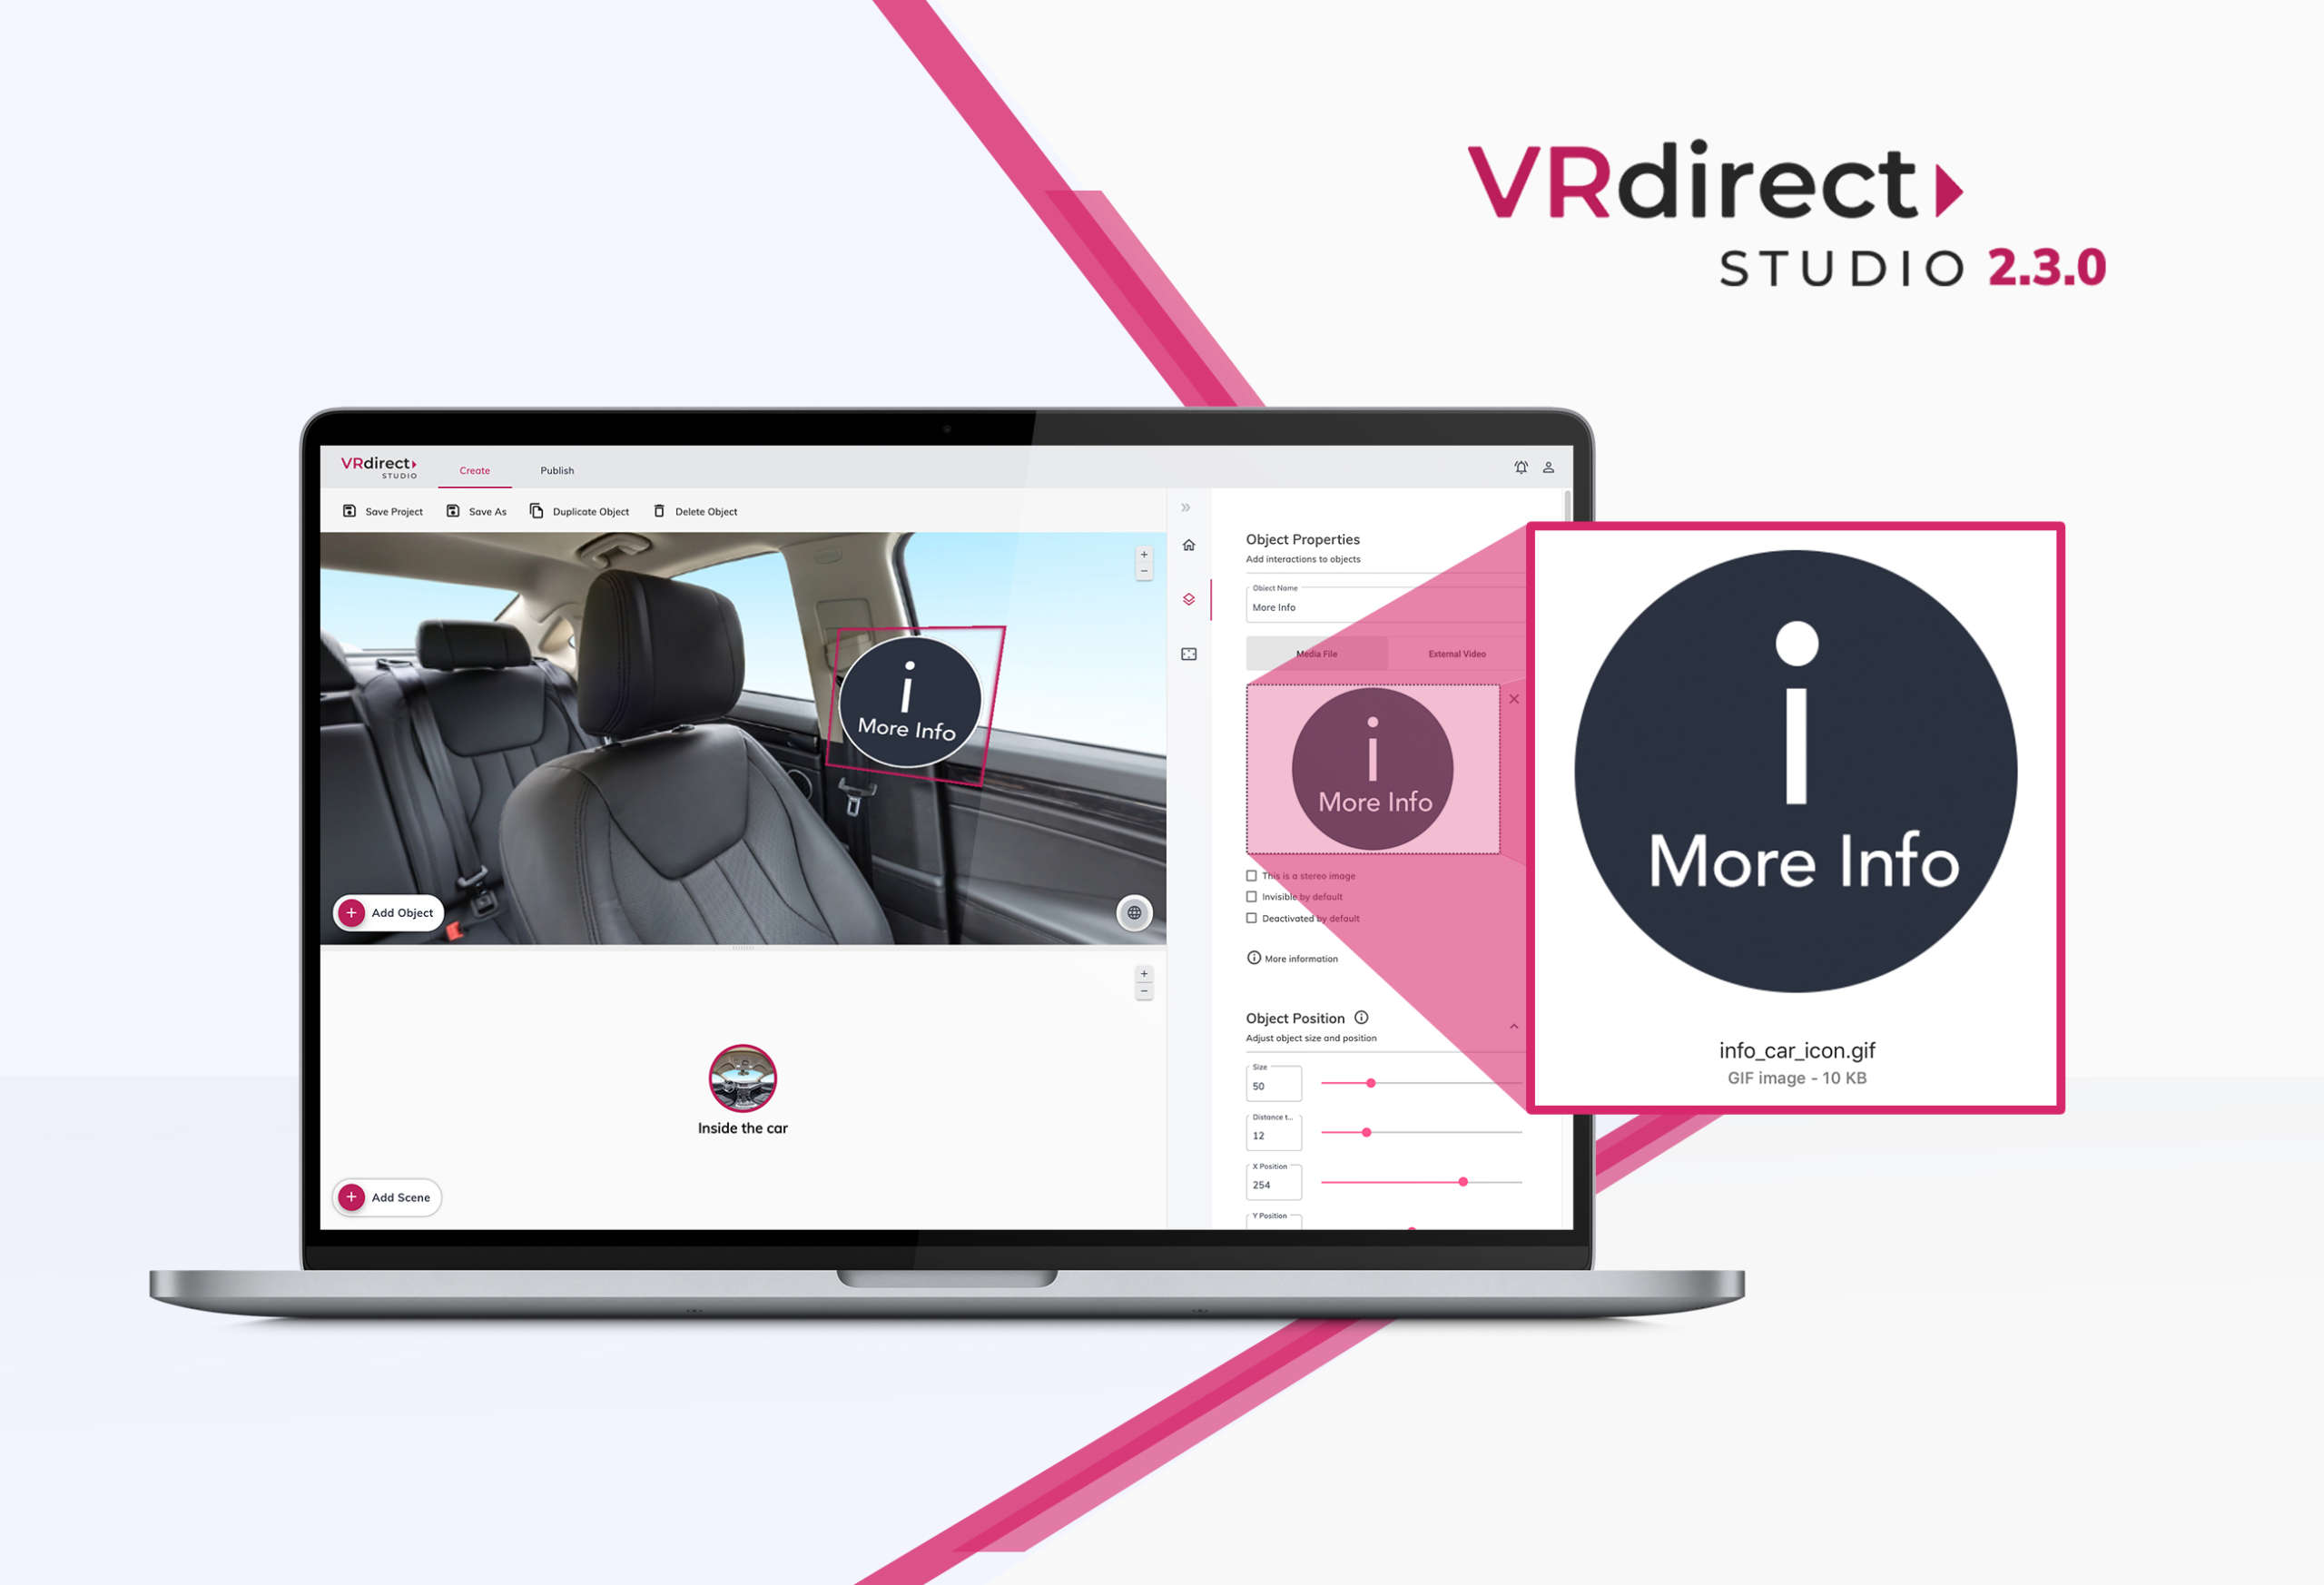 VRdirect 2.3.0 : New version enables widespread use of virtual reality in companies